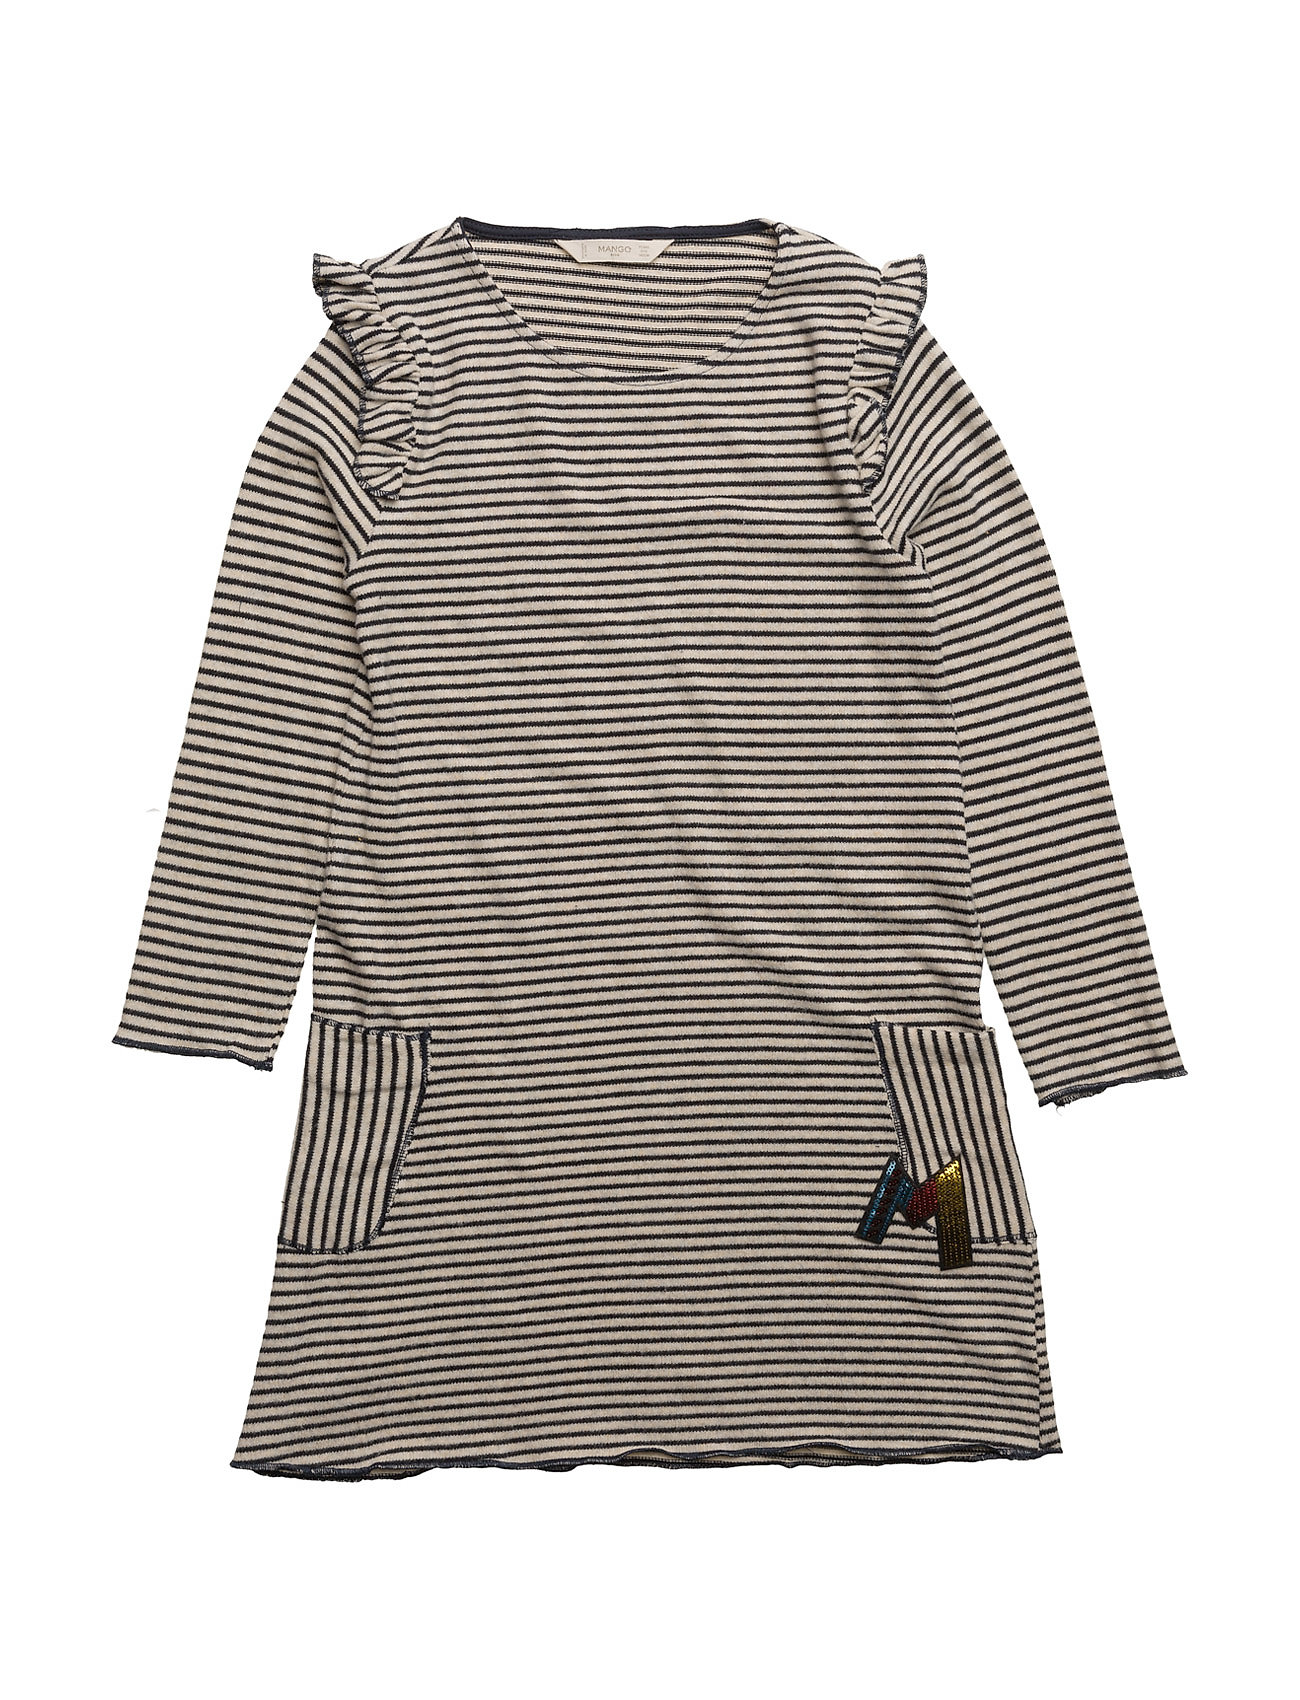 Striped Jersey Dress Mango Kids Kjoler til Børn i Navy blå